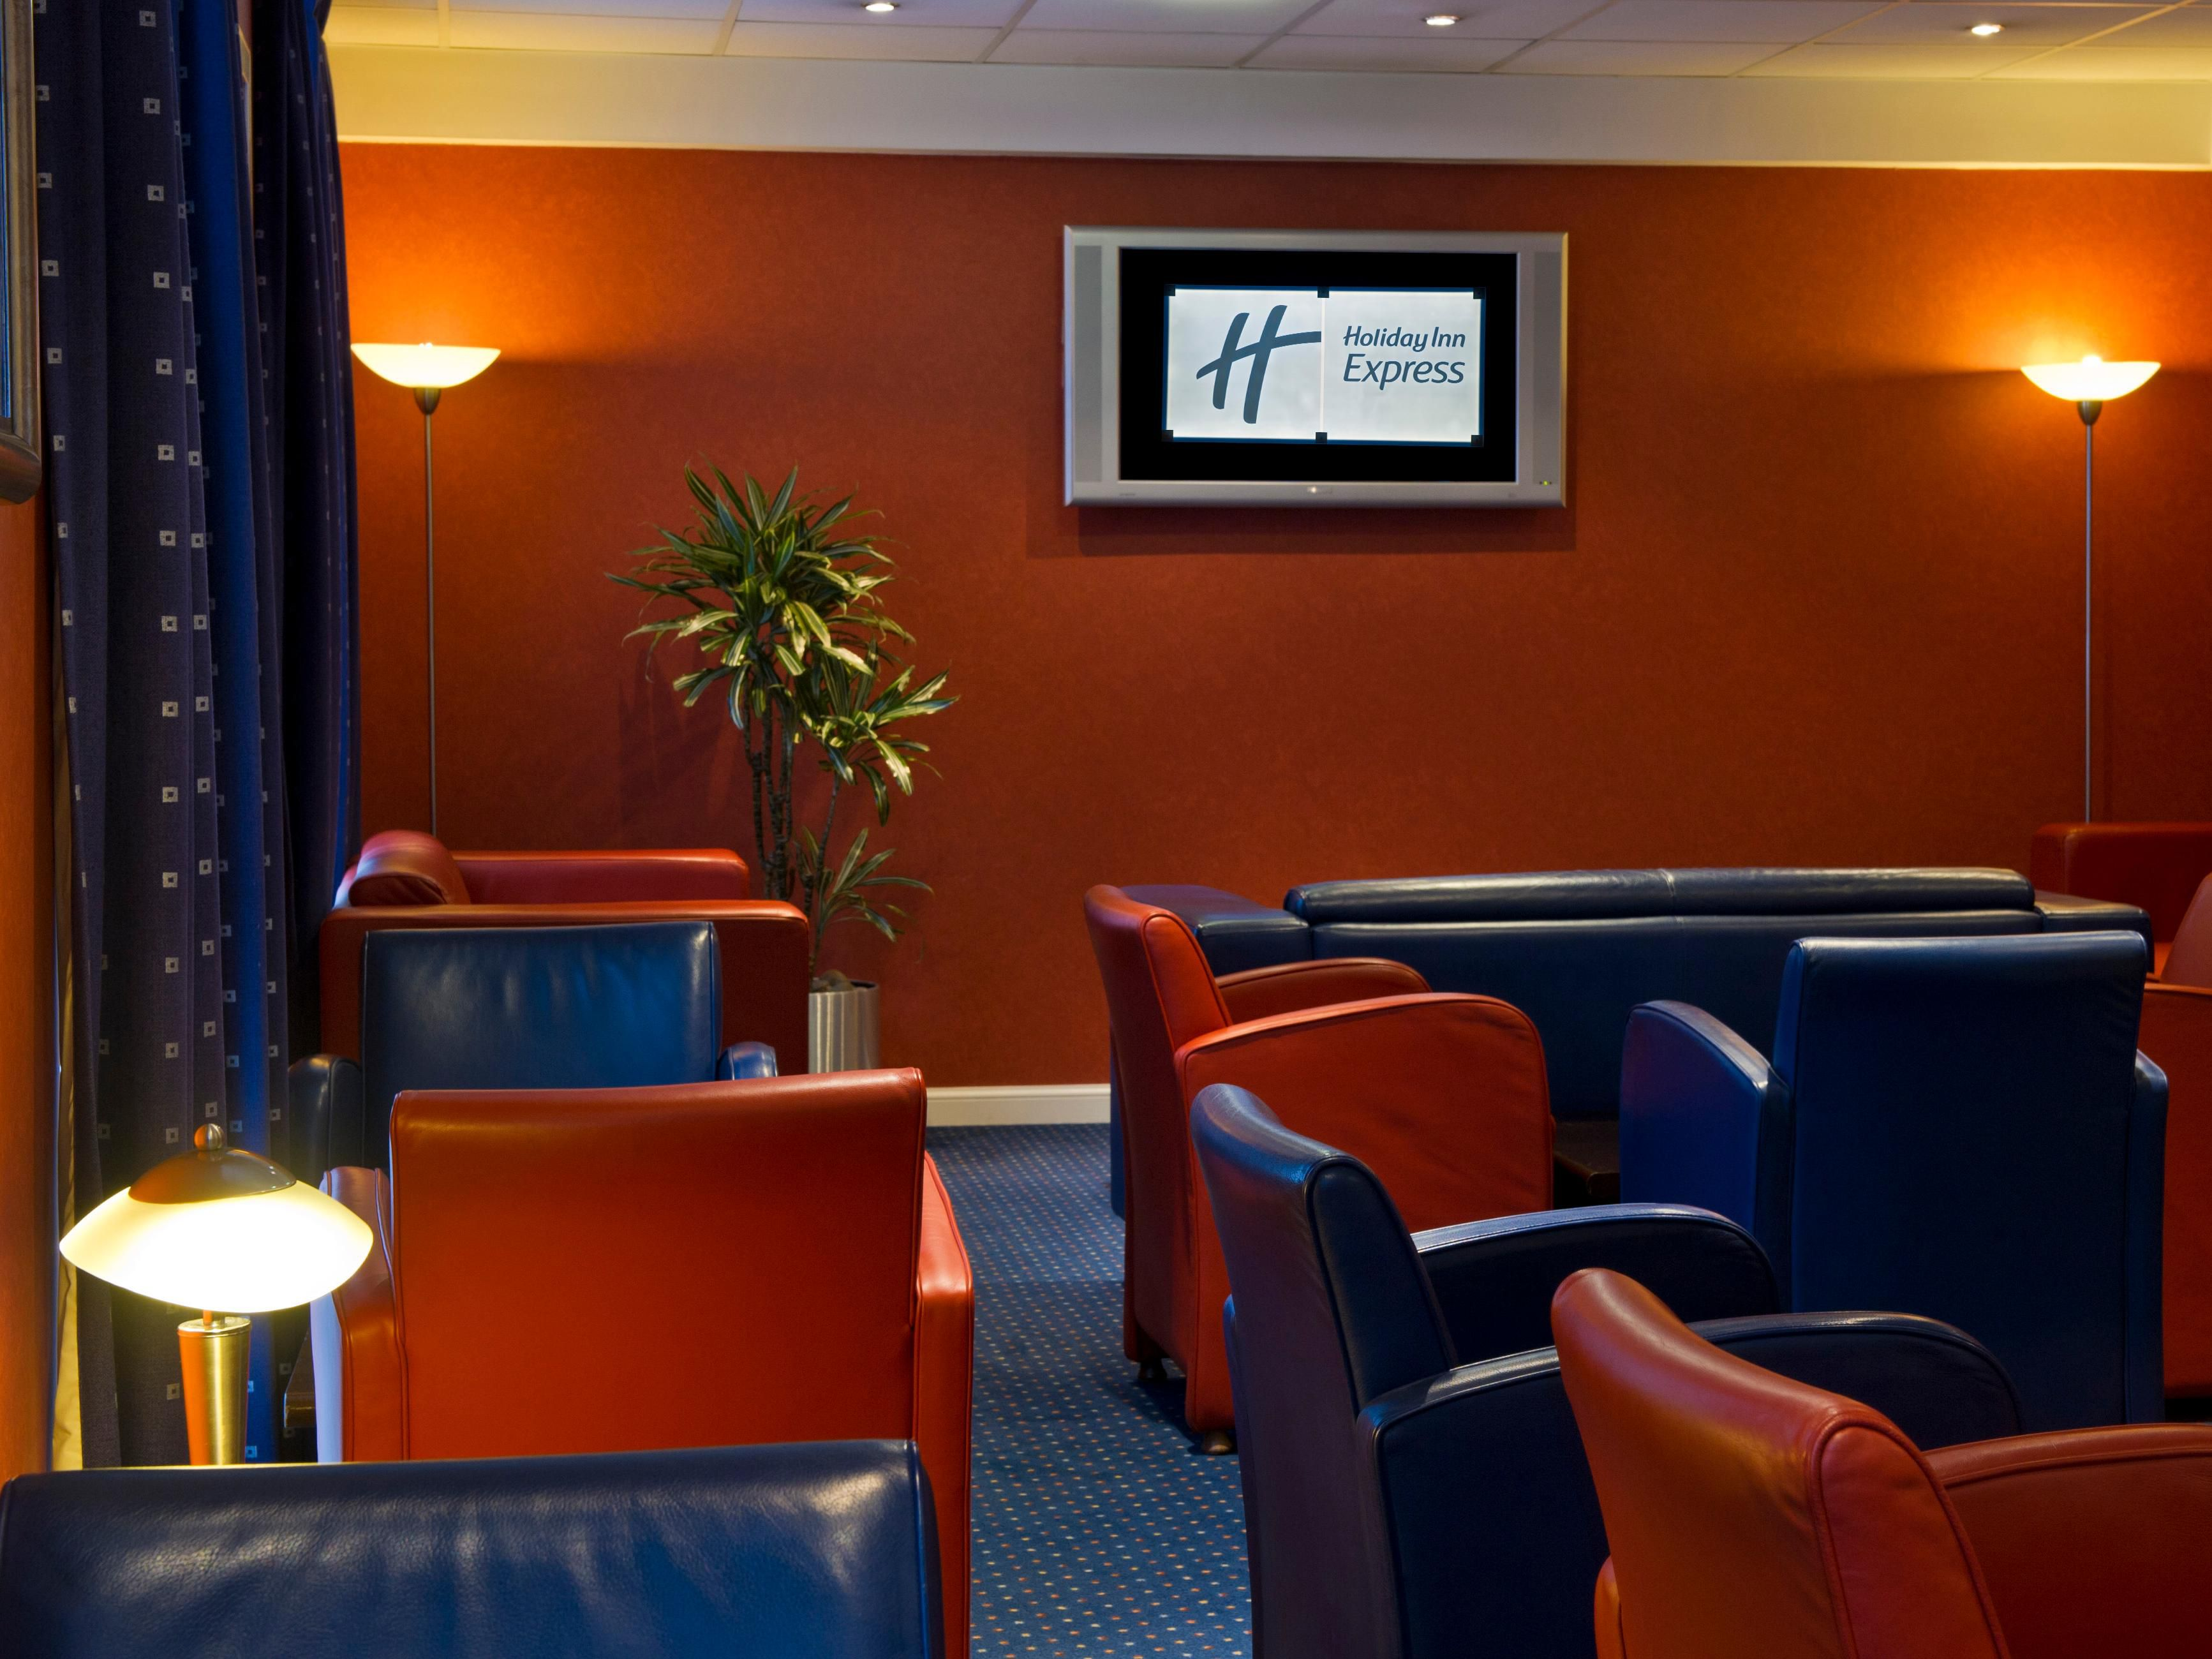 Catch some sports action with a pint in our comfortable bar